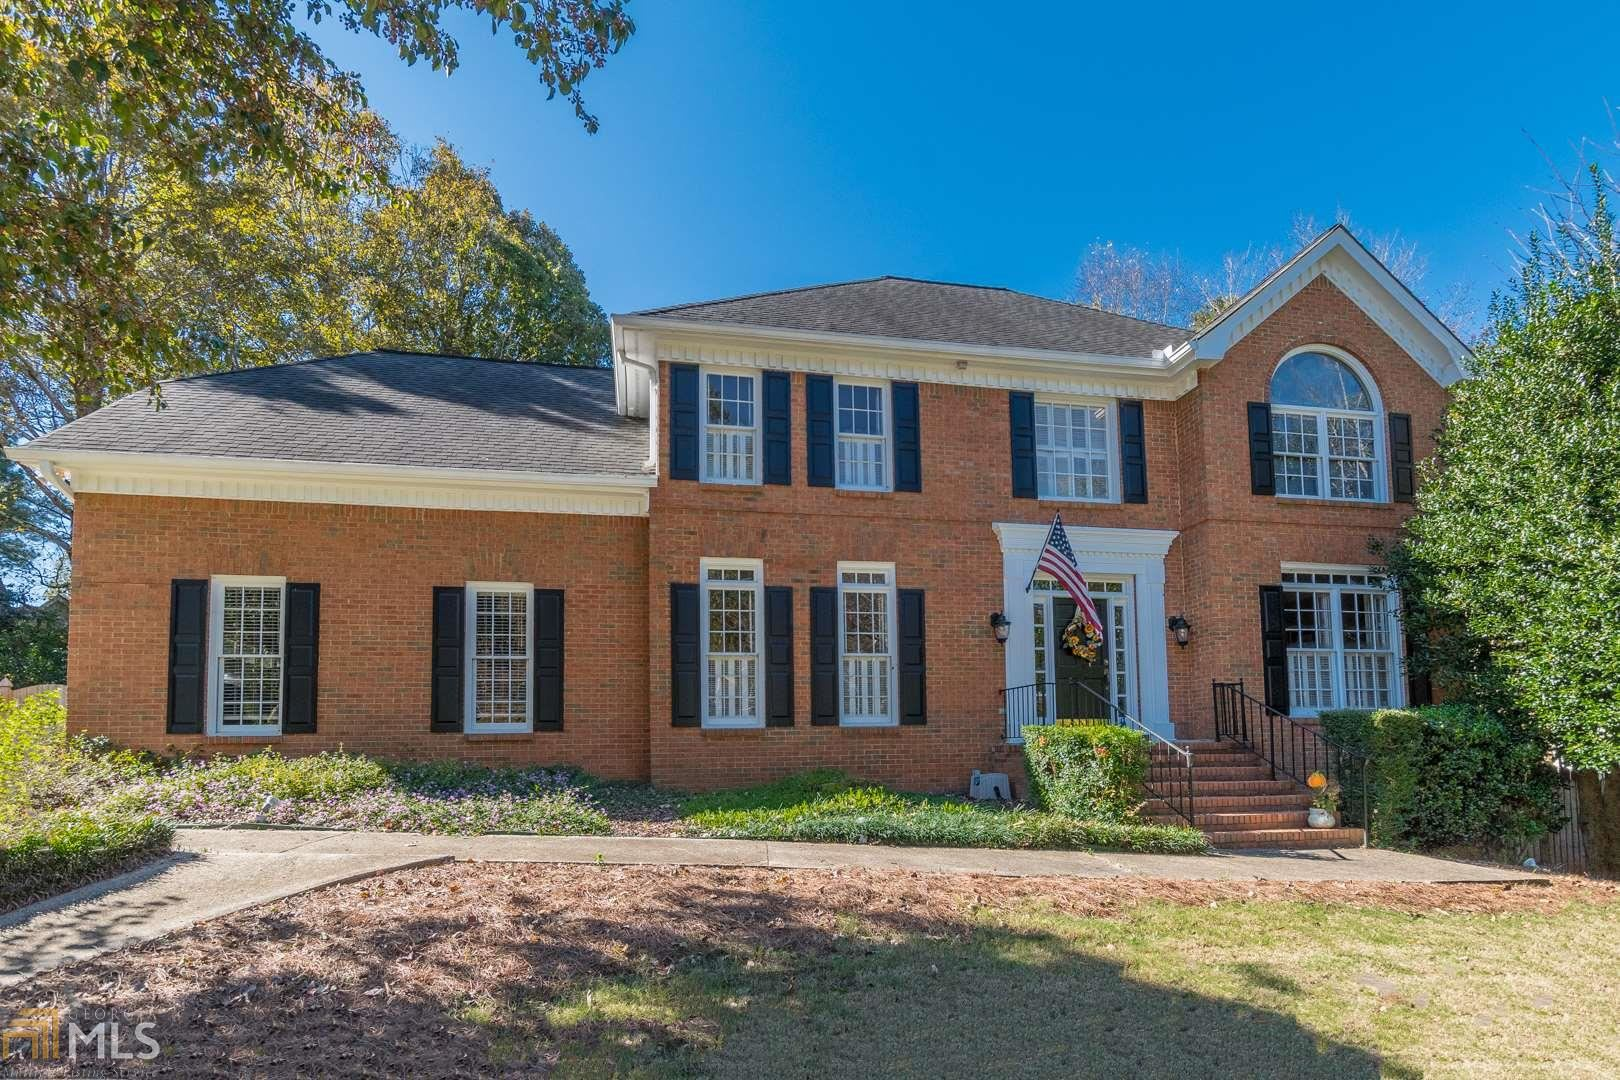 3766 Grand Forest Dr, Peachtree Corners, GA 30092 - MLS#: 8877923